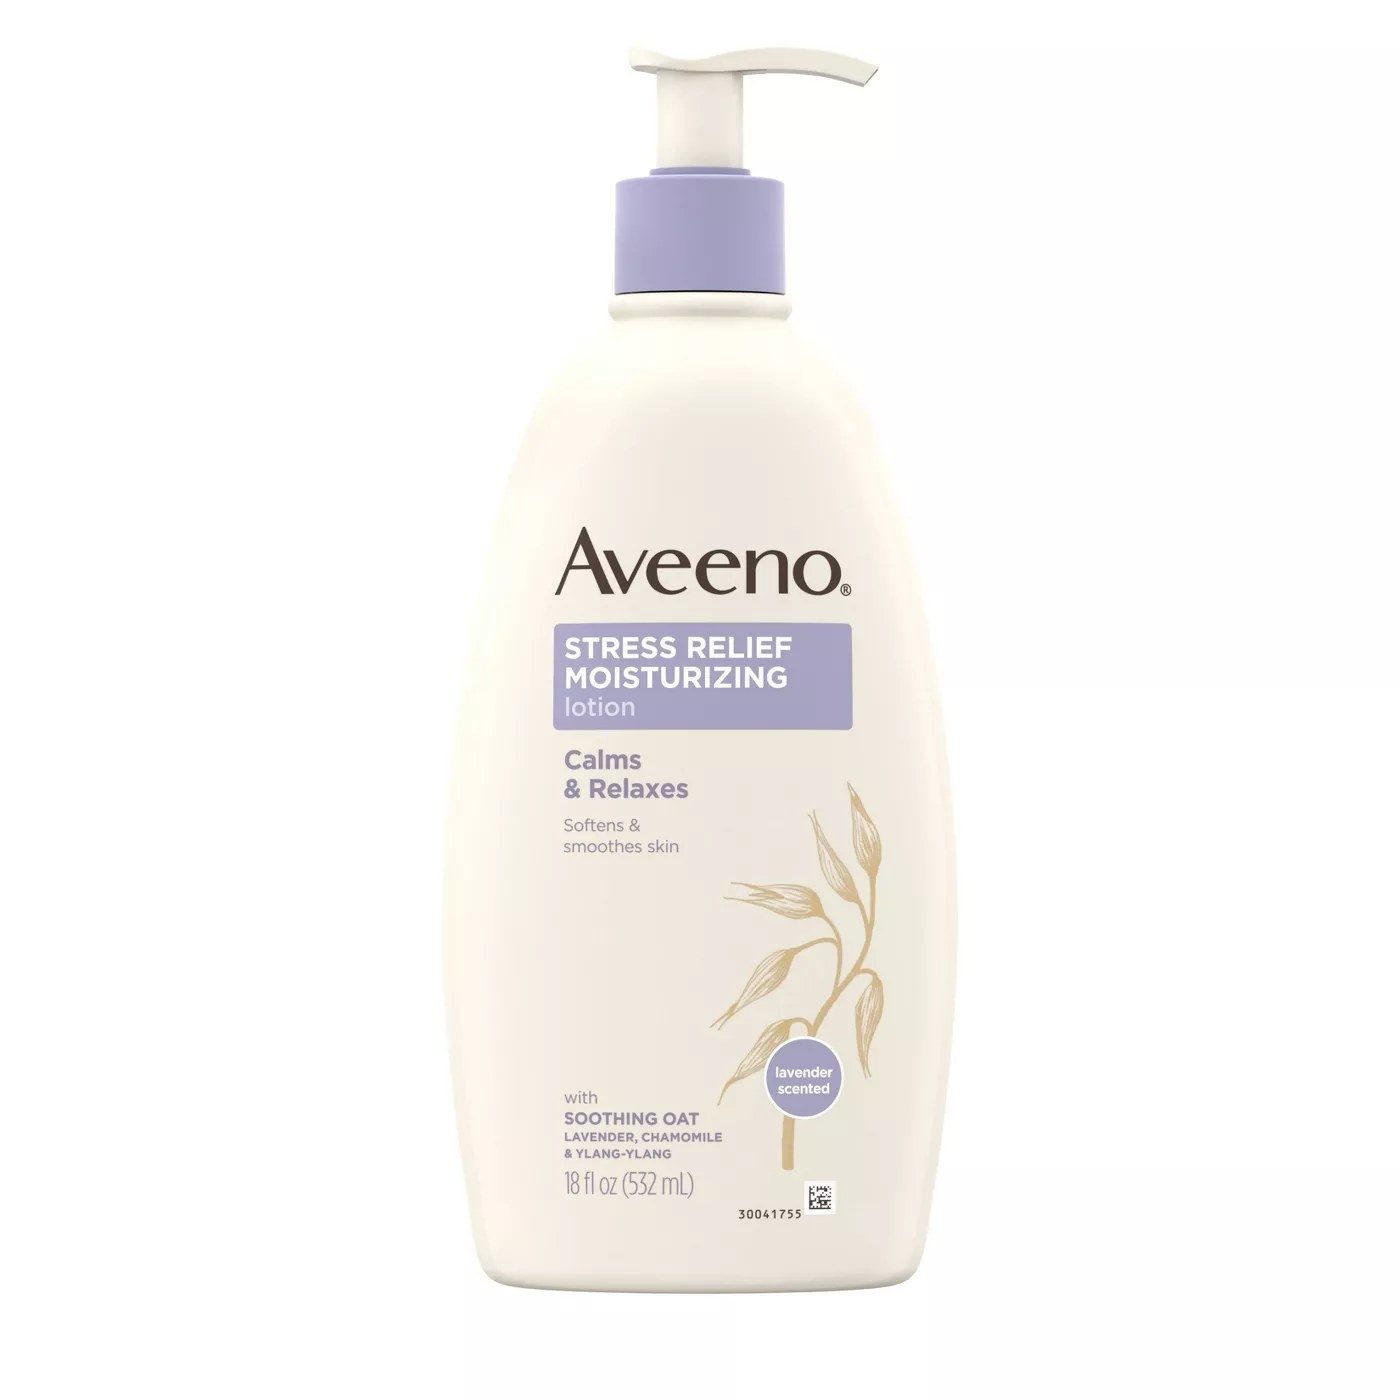 An 18-oz bottle of Aveeno stress-relief moisturizing lotion softens and smoothes skin with soothing oat, lavender, chamomile, and ylang-ylang